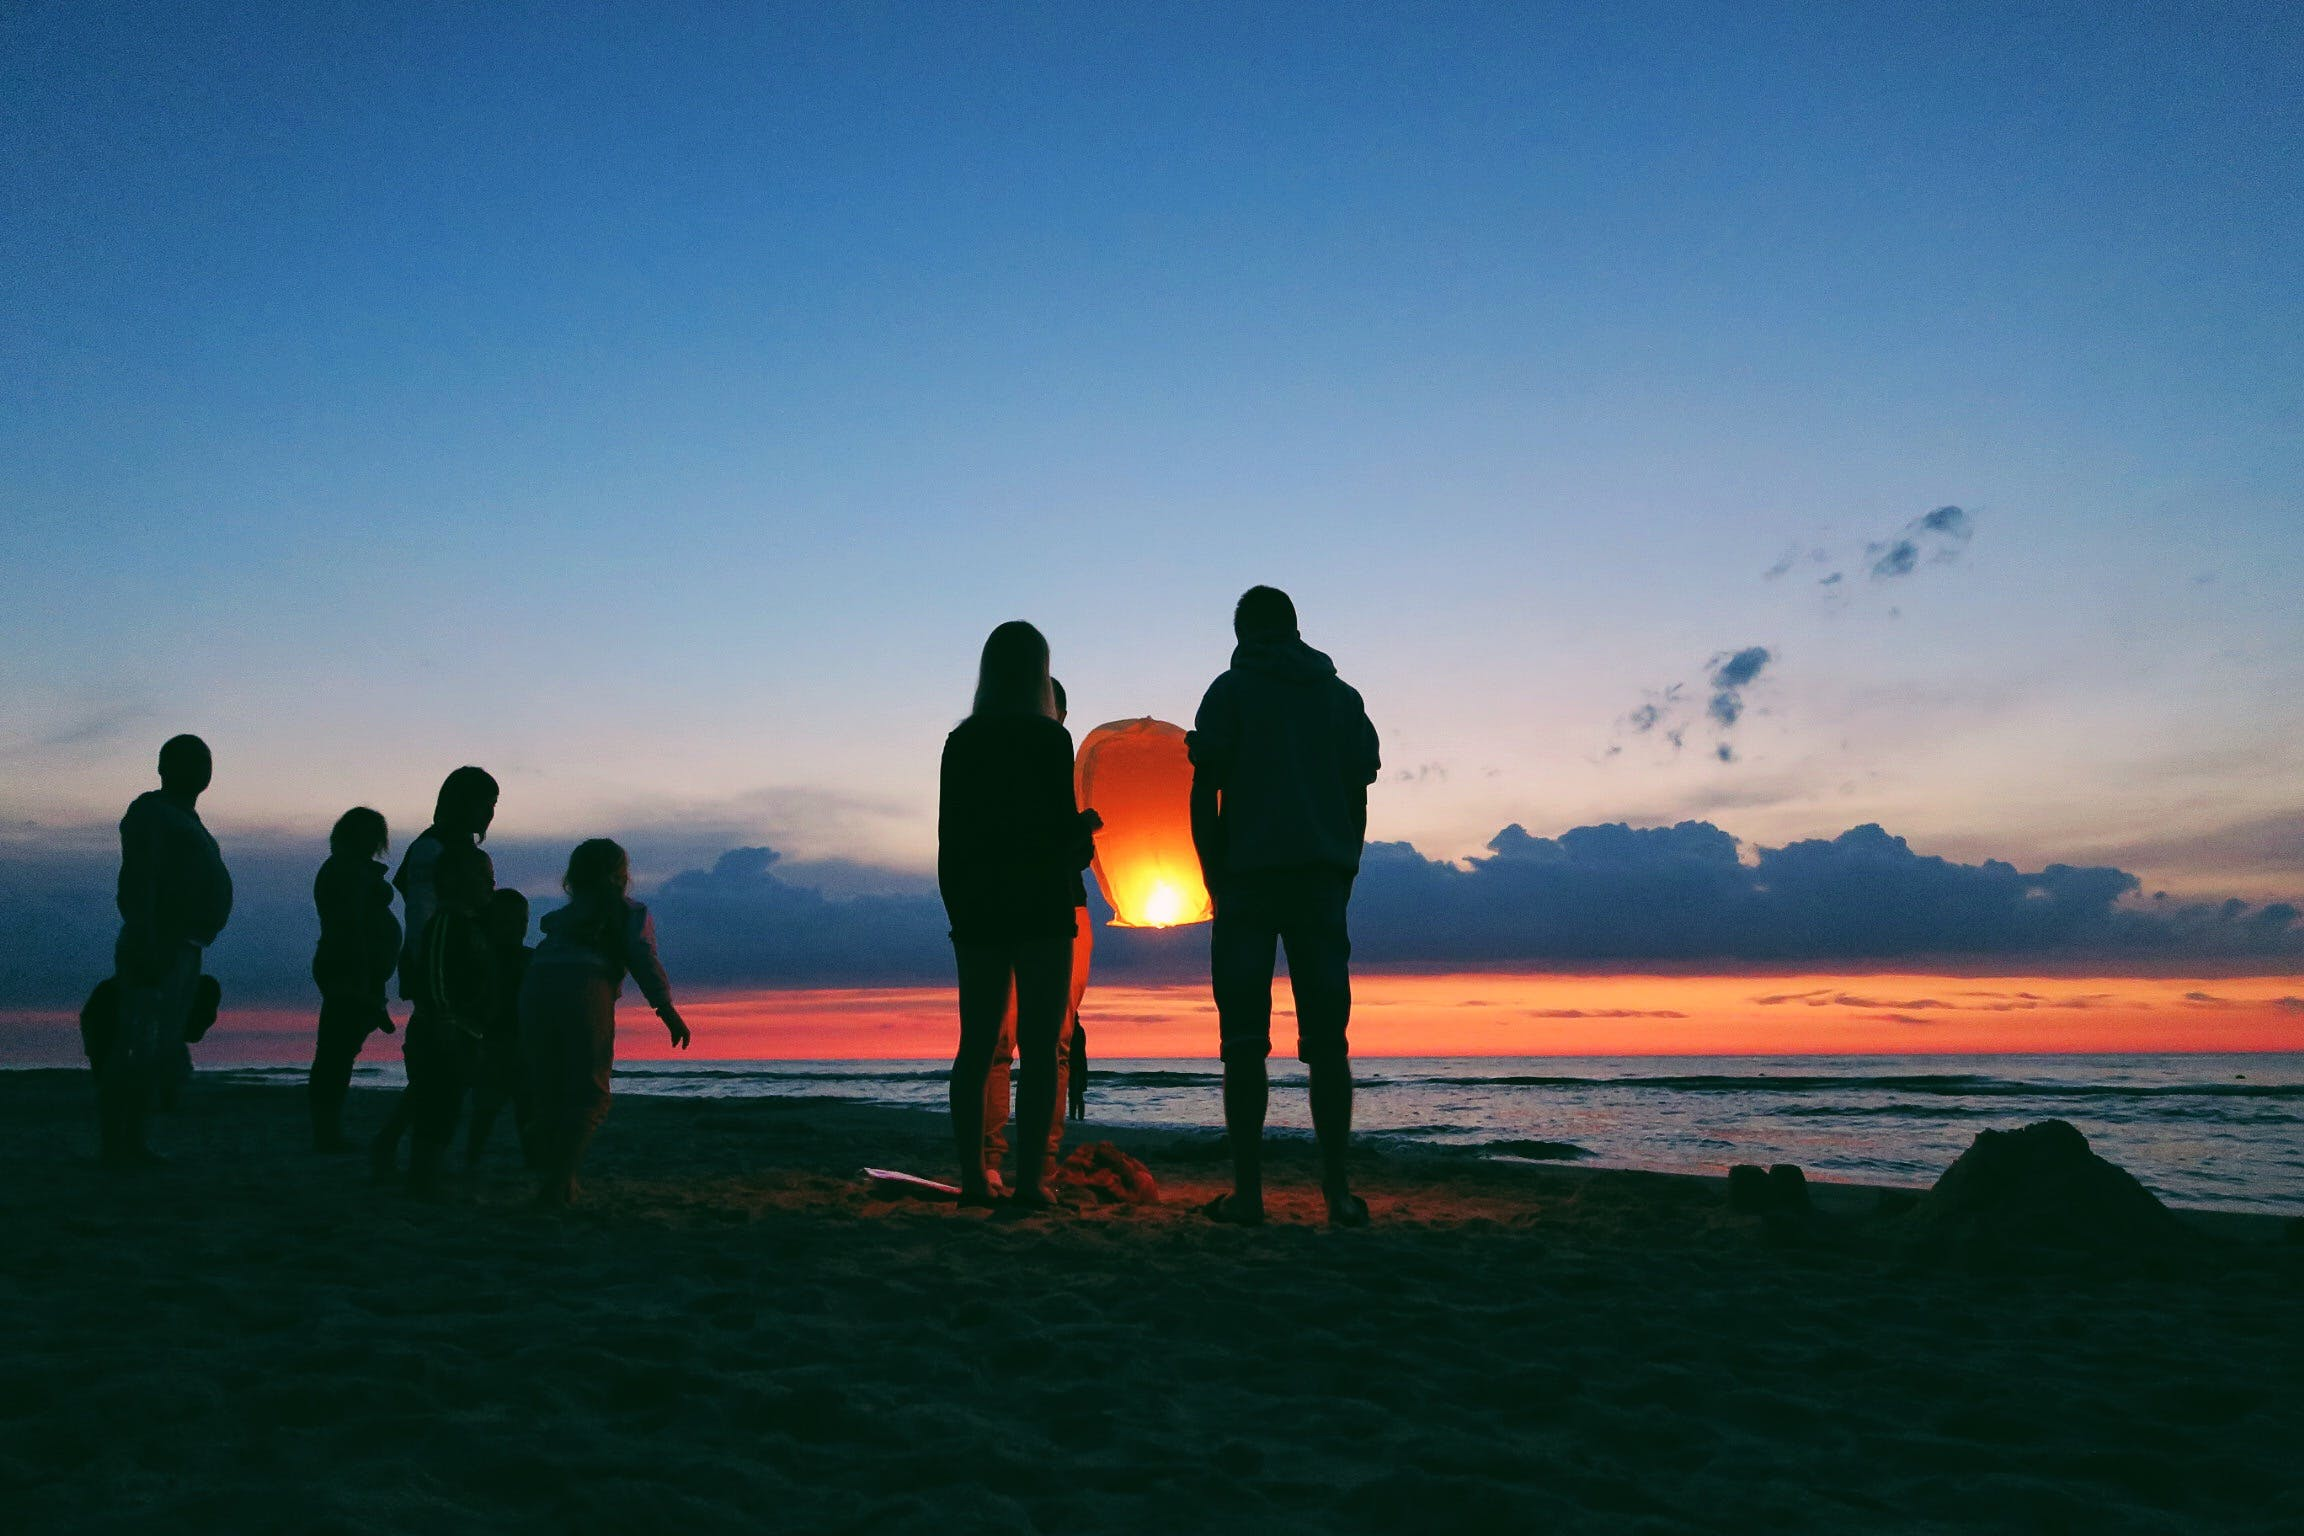 Silhouette of People by the Sea